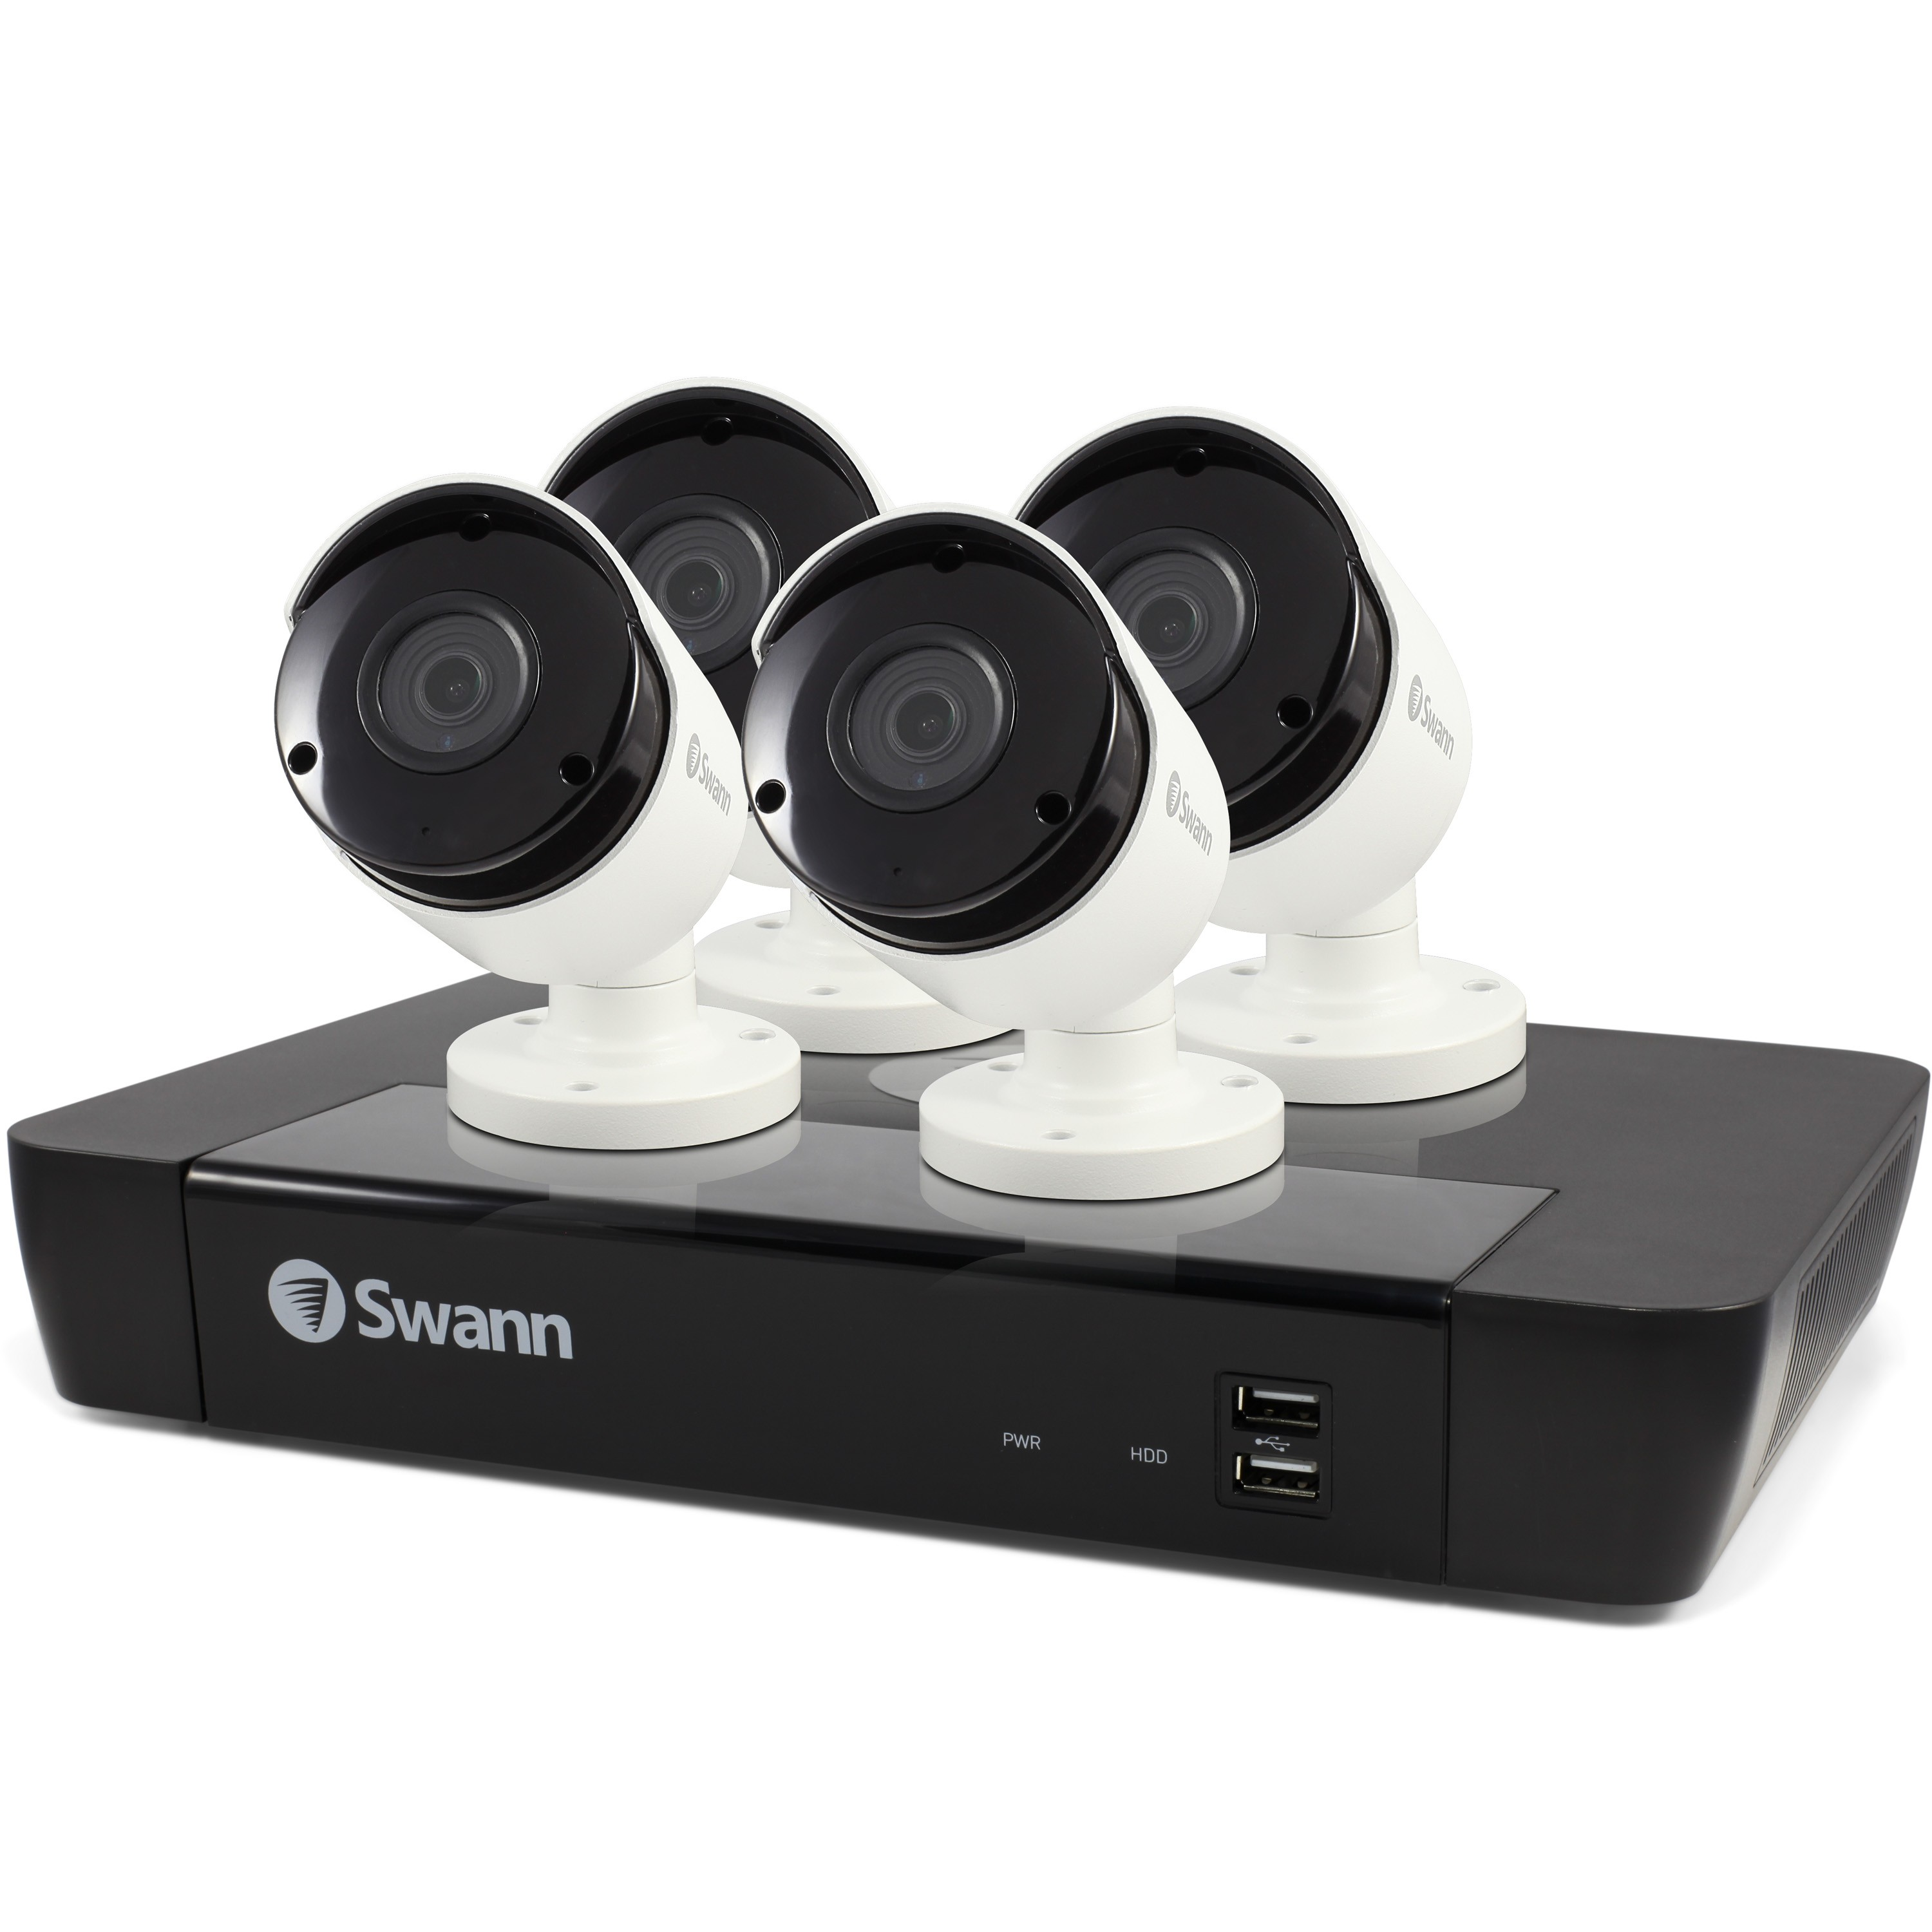 Nvr8 7450 8 channel 5mp super hd network video recorder 4 x nhd swnvk 874504 swann 8 channel security system 5mp super hd nvr 7450 with solutioingenieria Images